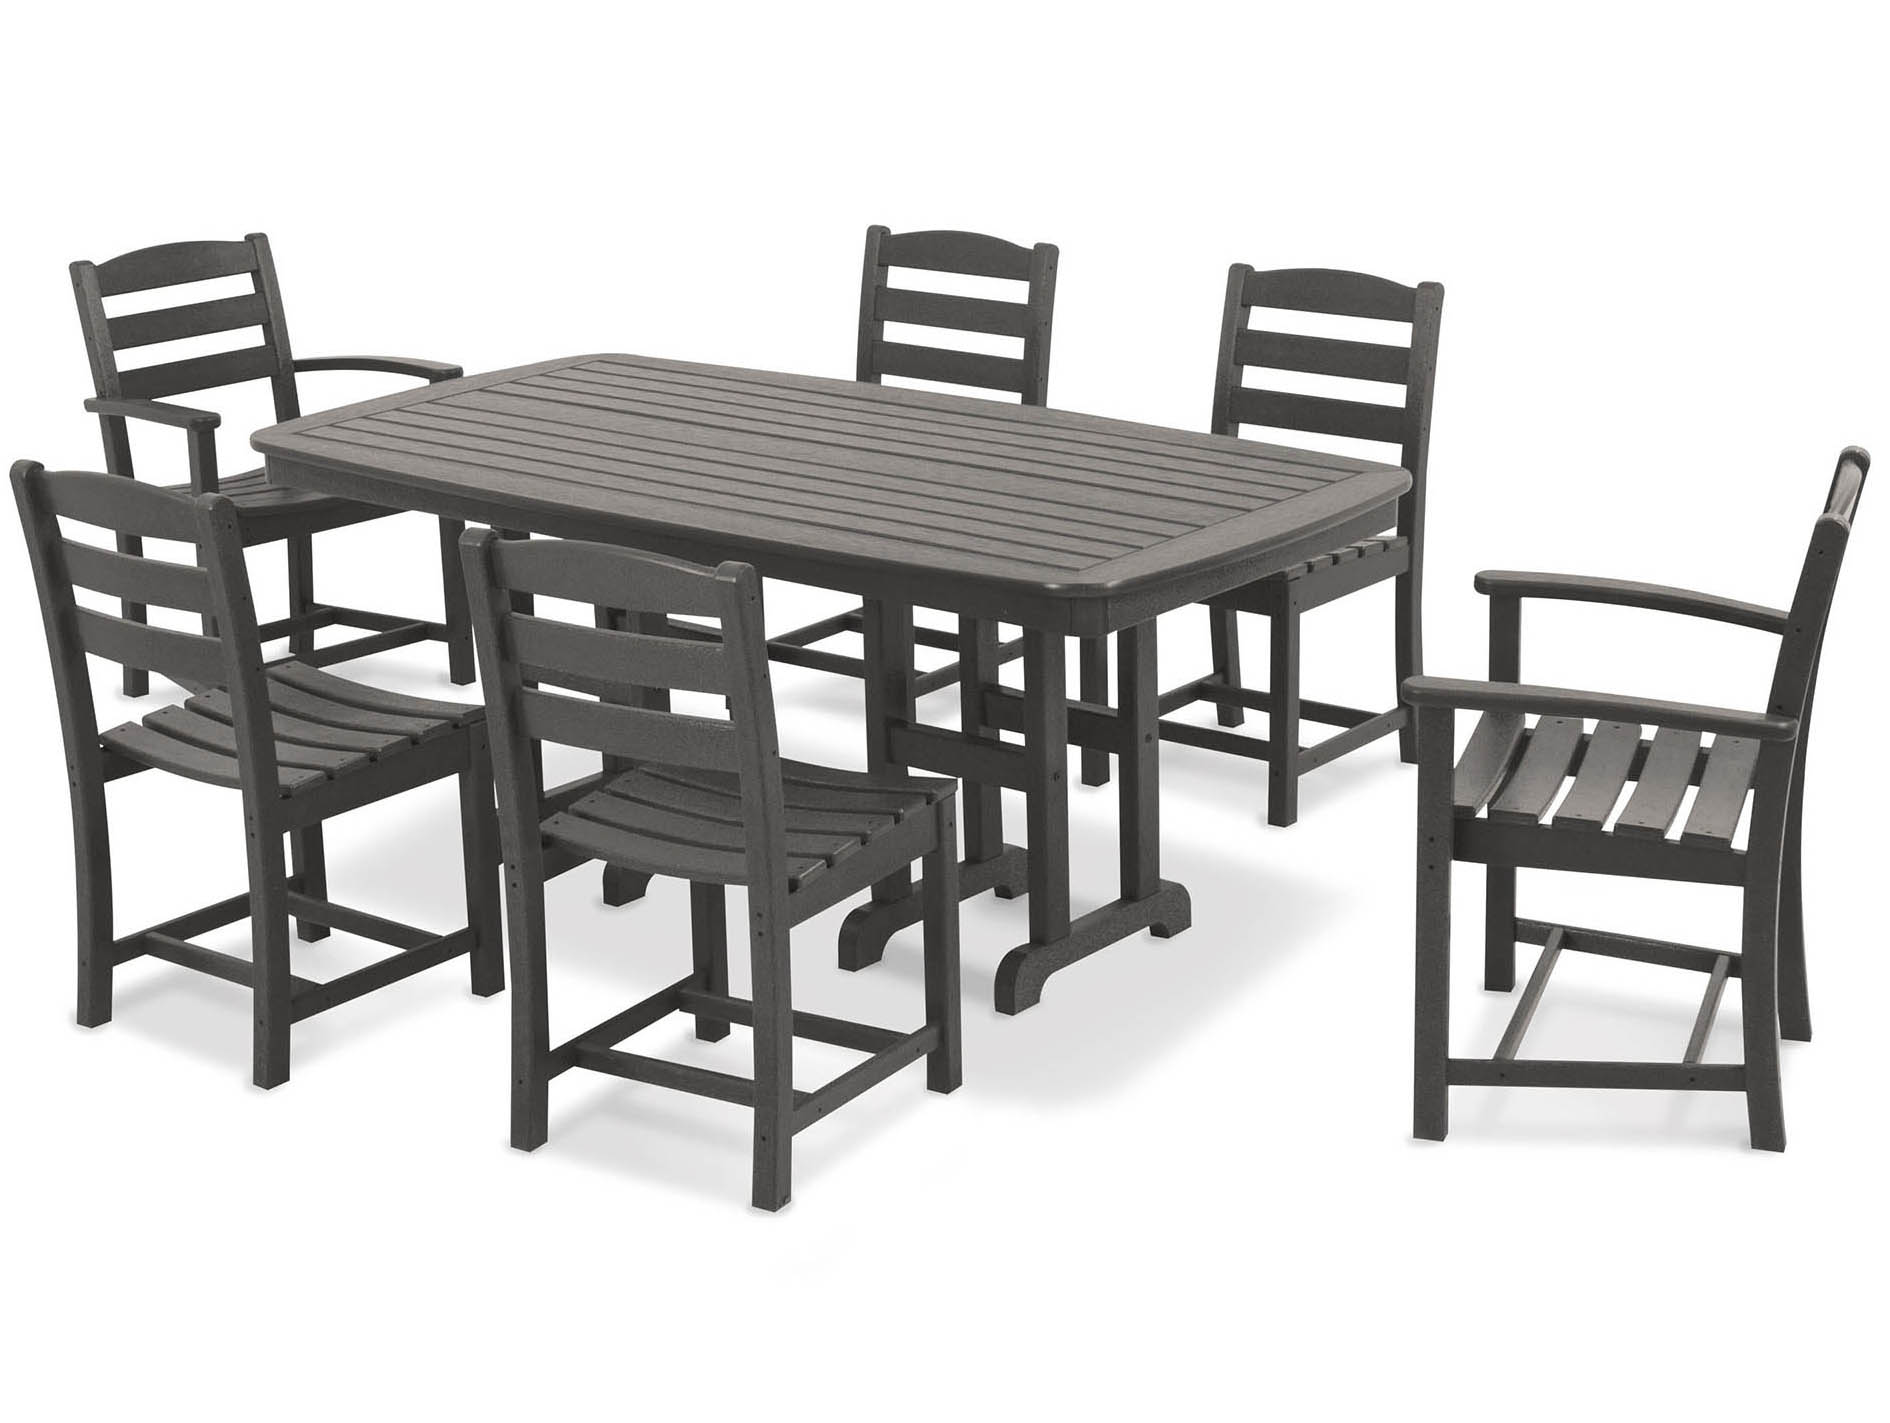 Excellent La Casa Cafe Dining Set Product Photo